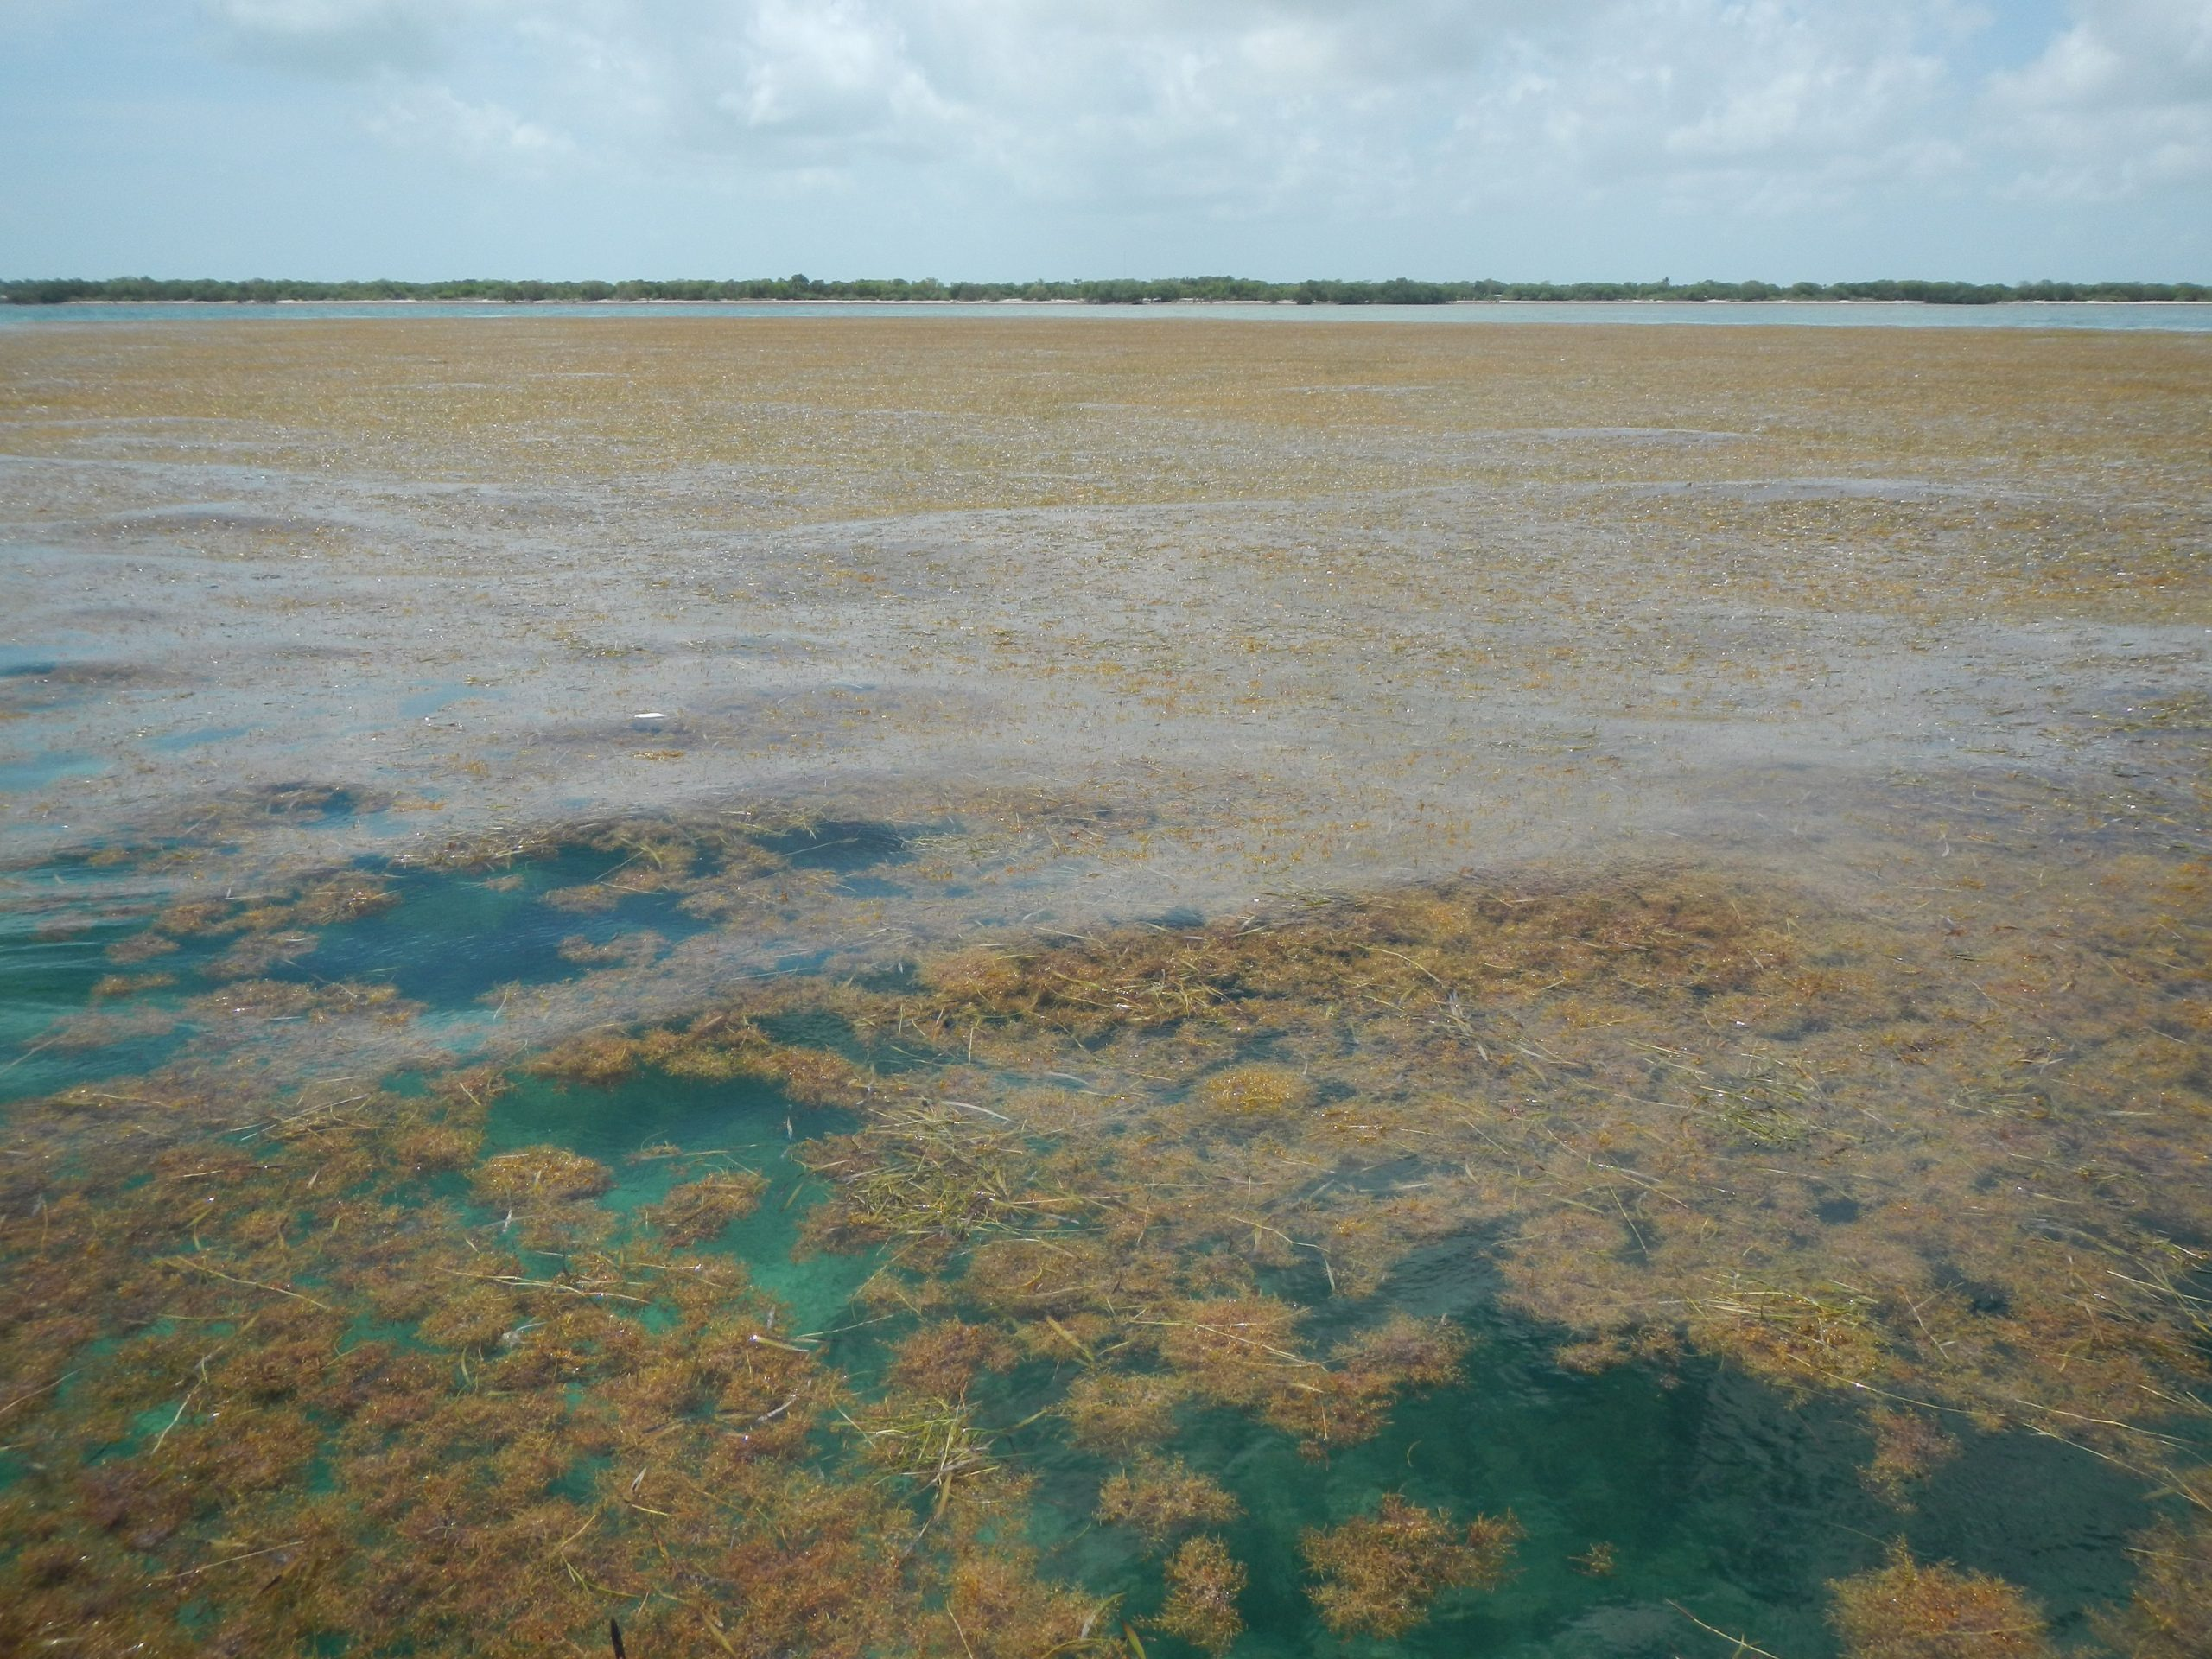 Sargassum piles up around Munson Island, Florida Keys. Credit: Brian Lapointe